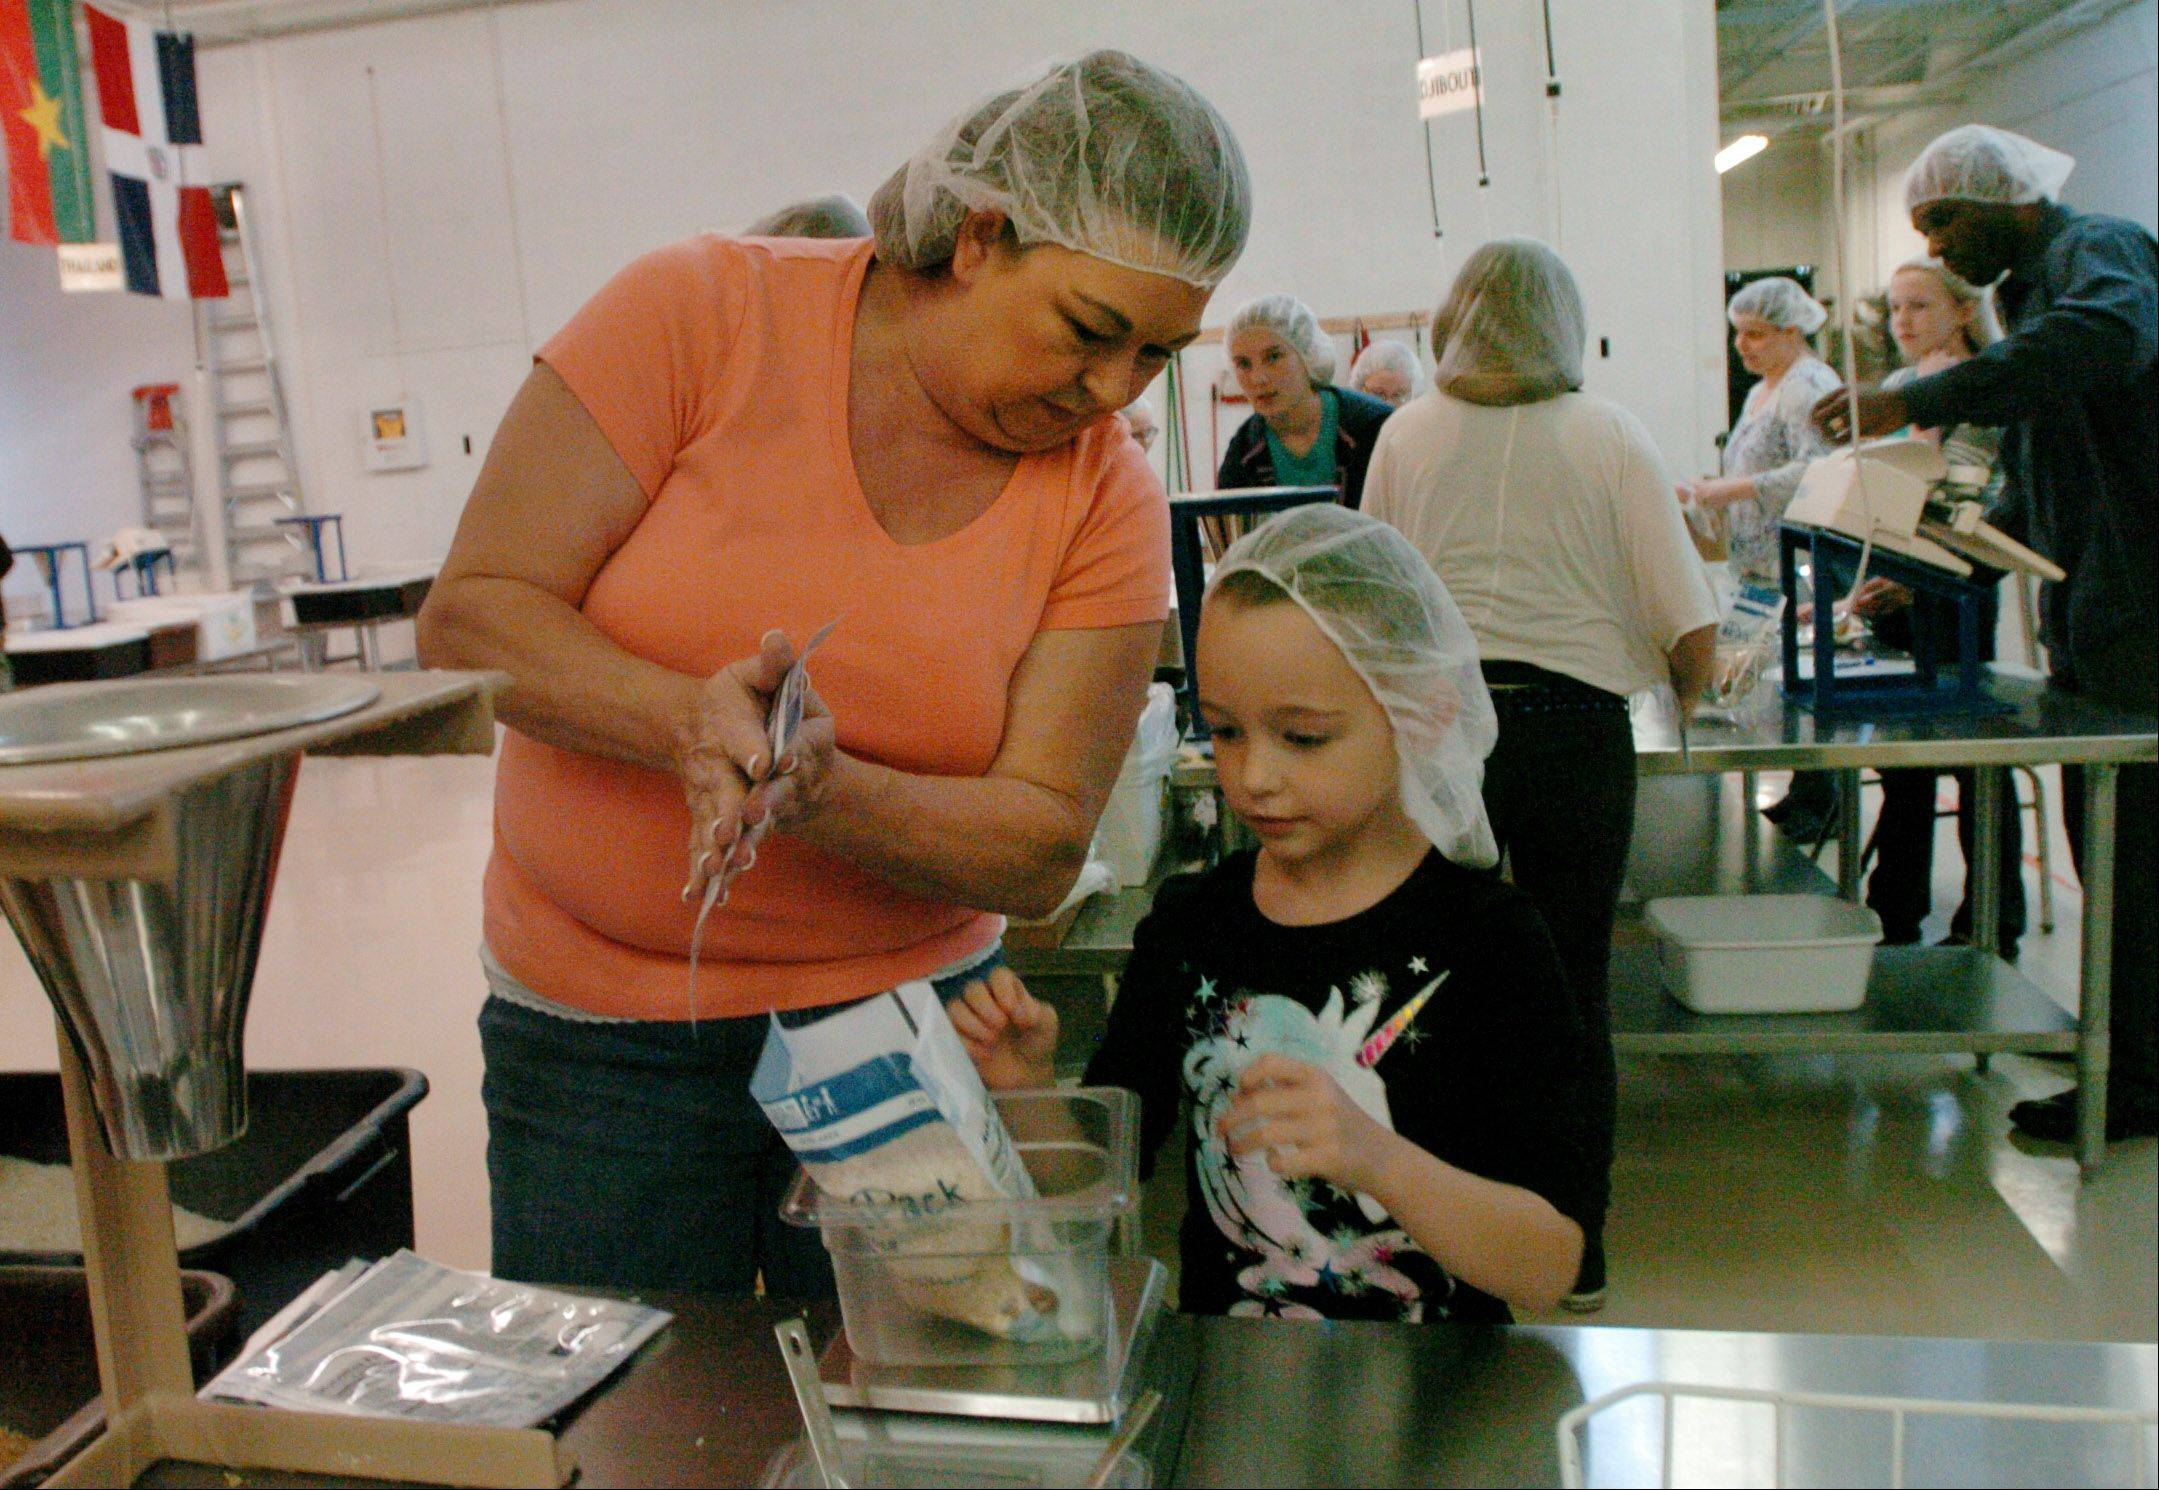 It�s often a family affair at the various locations for Feed My Starving Children, which sends pre-packed meals to hungry children across the globe. Here at the Schaumburg location, home school mother Layna Owens of Elgin packs food with her daughter, Joah Owens, along with the Fox Valley Home Schoolers.